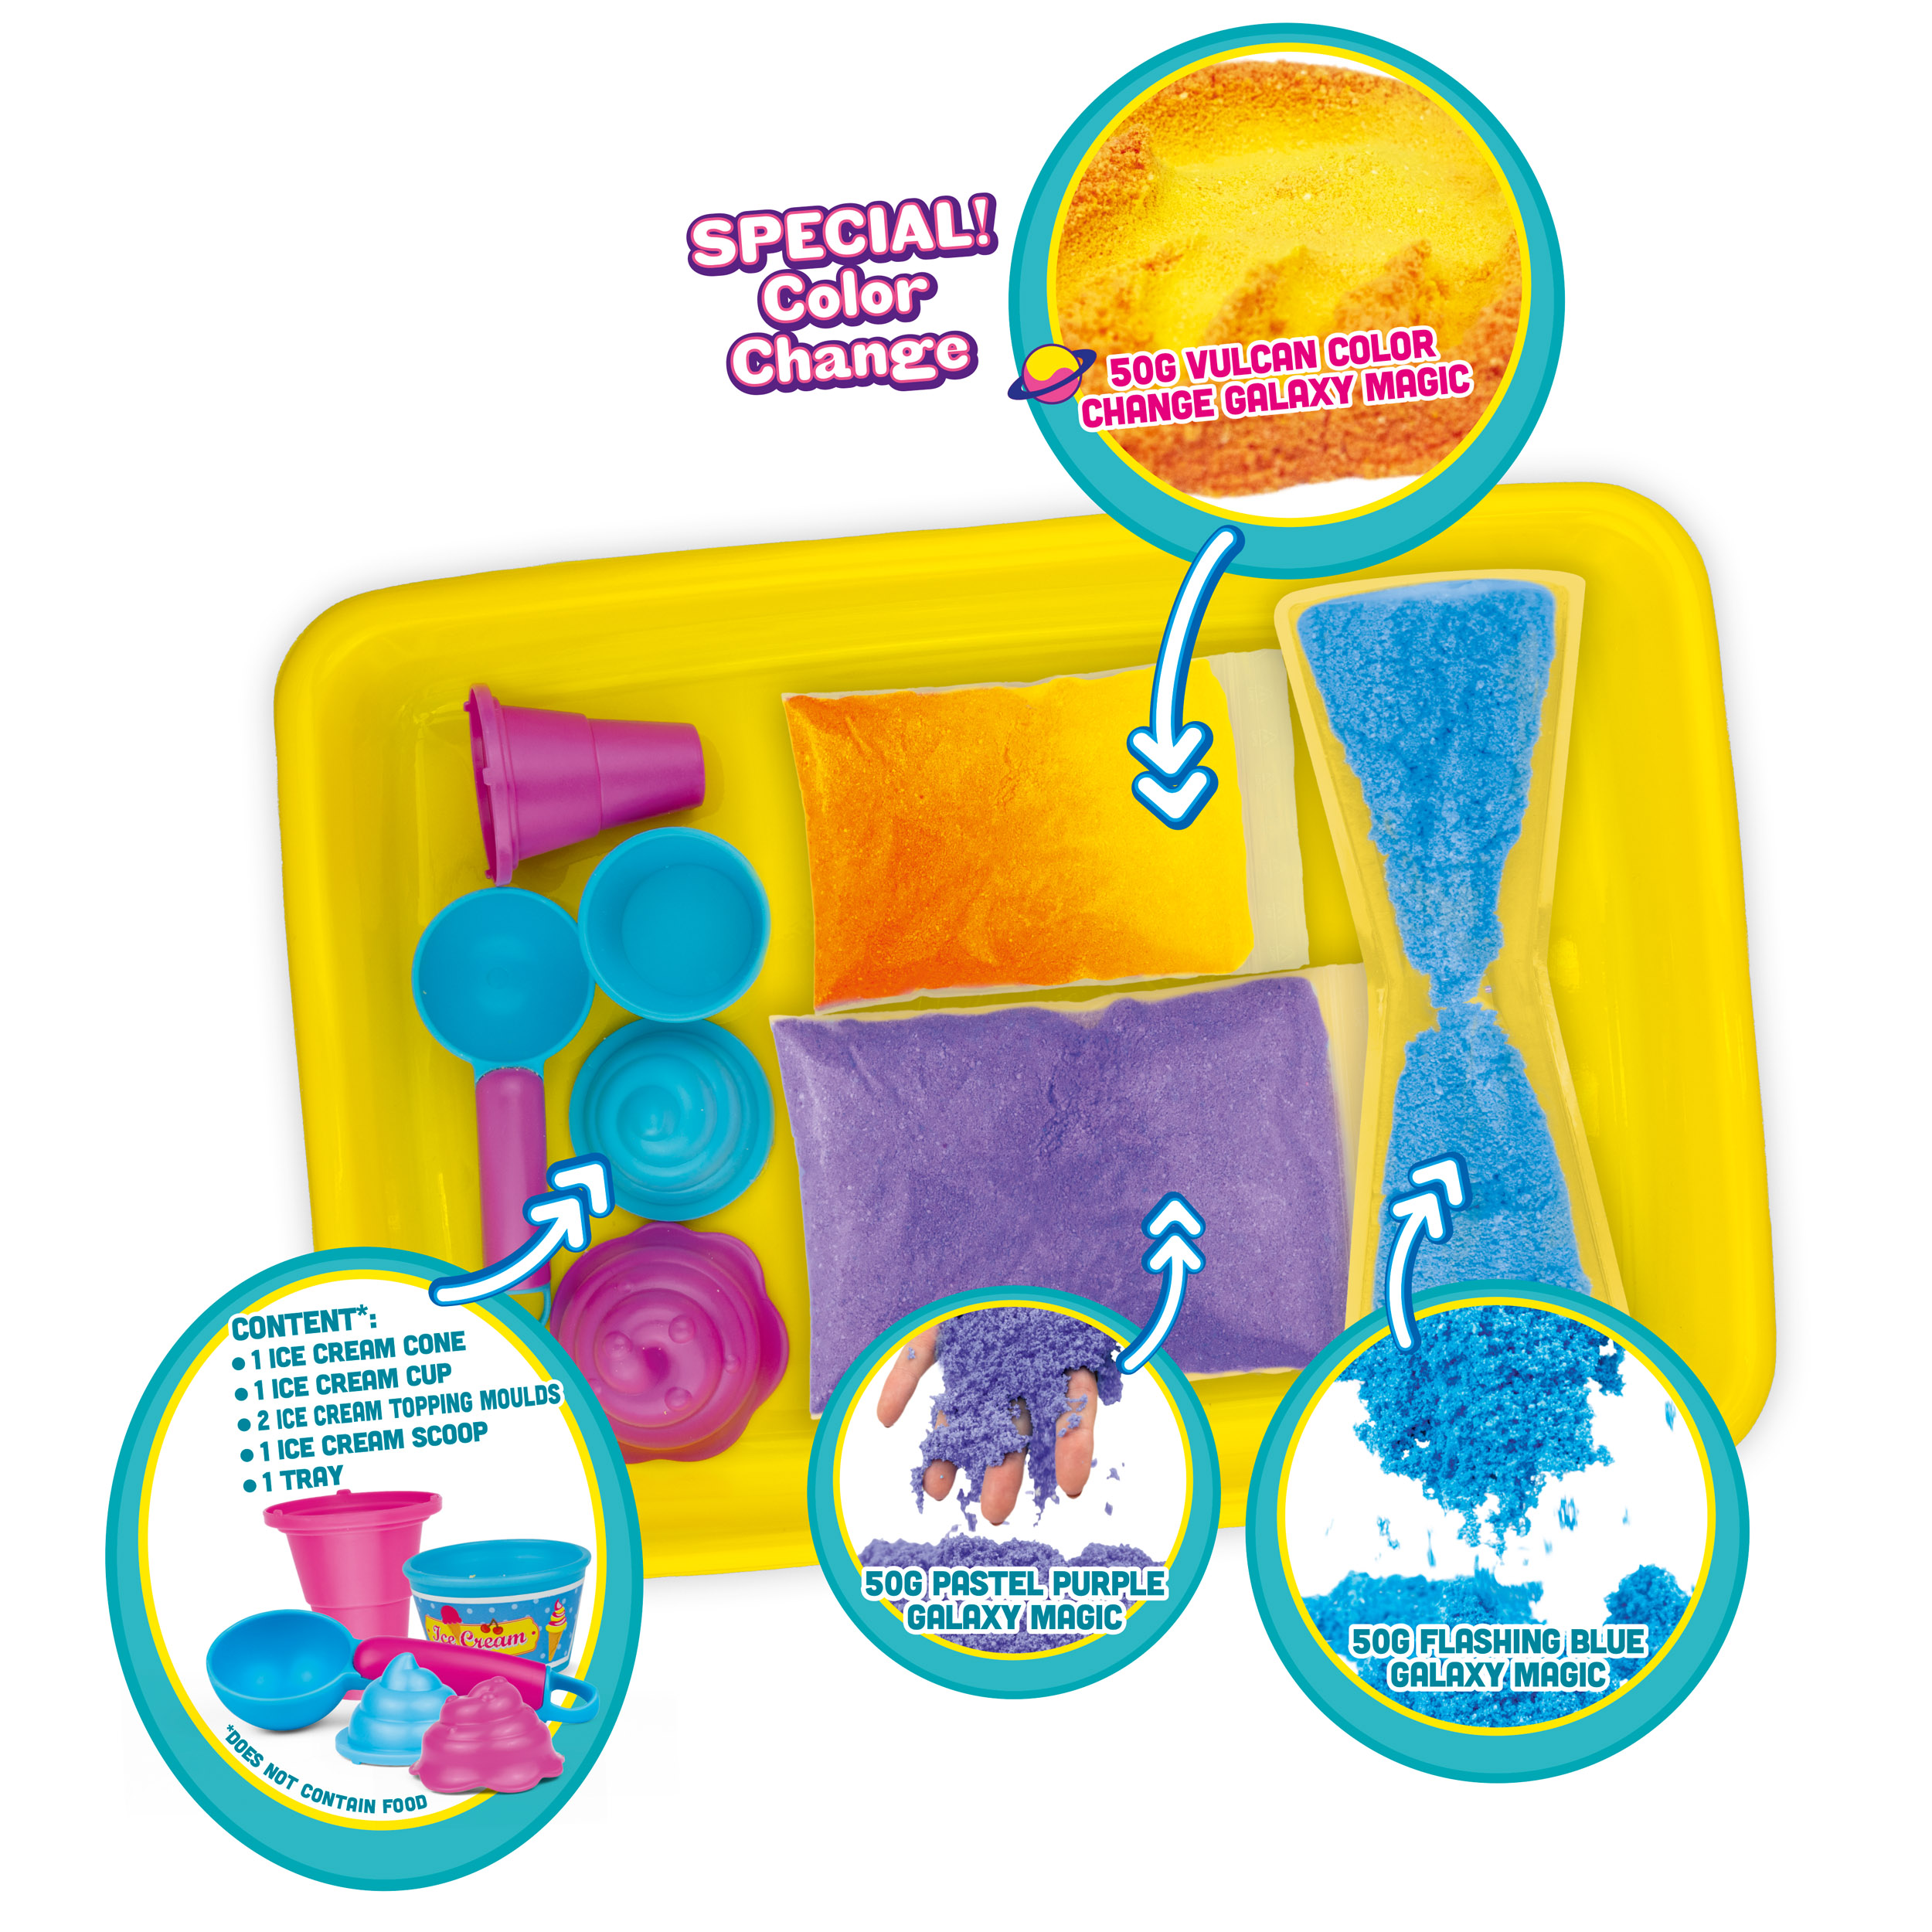 GALAXY MAGIC Ice Cream Box - Set mit 3 Farben